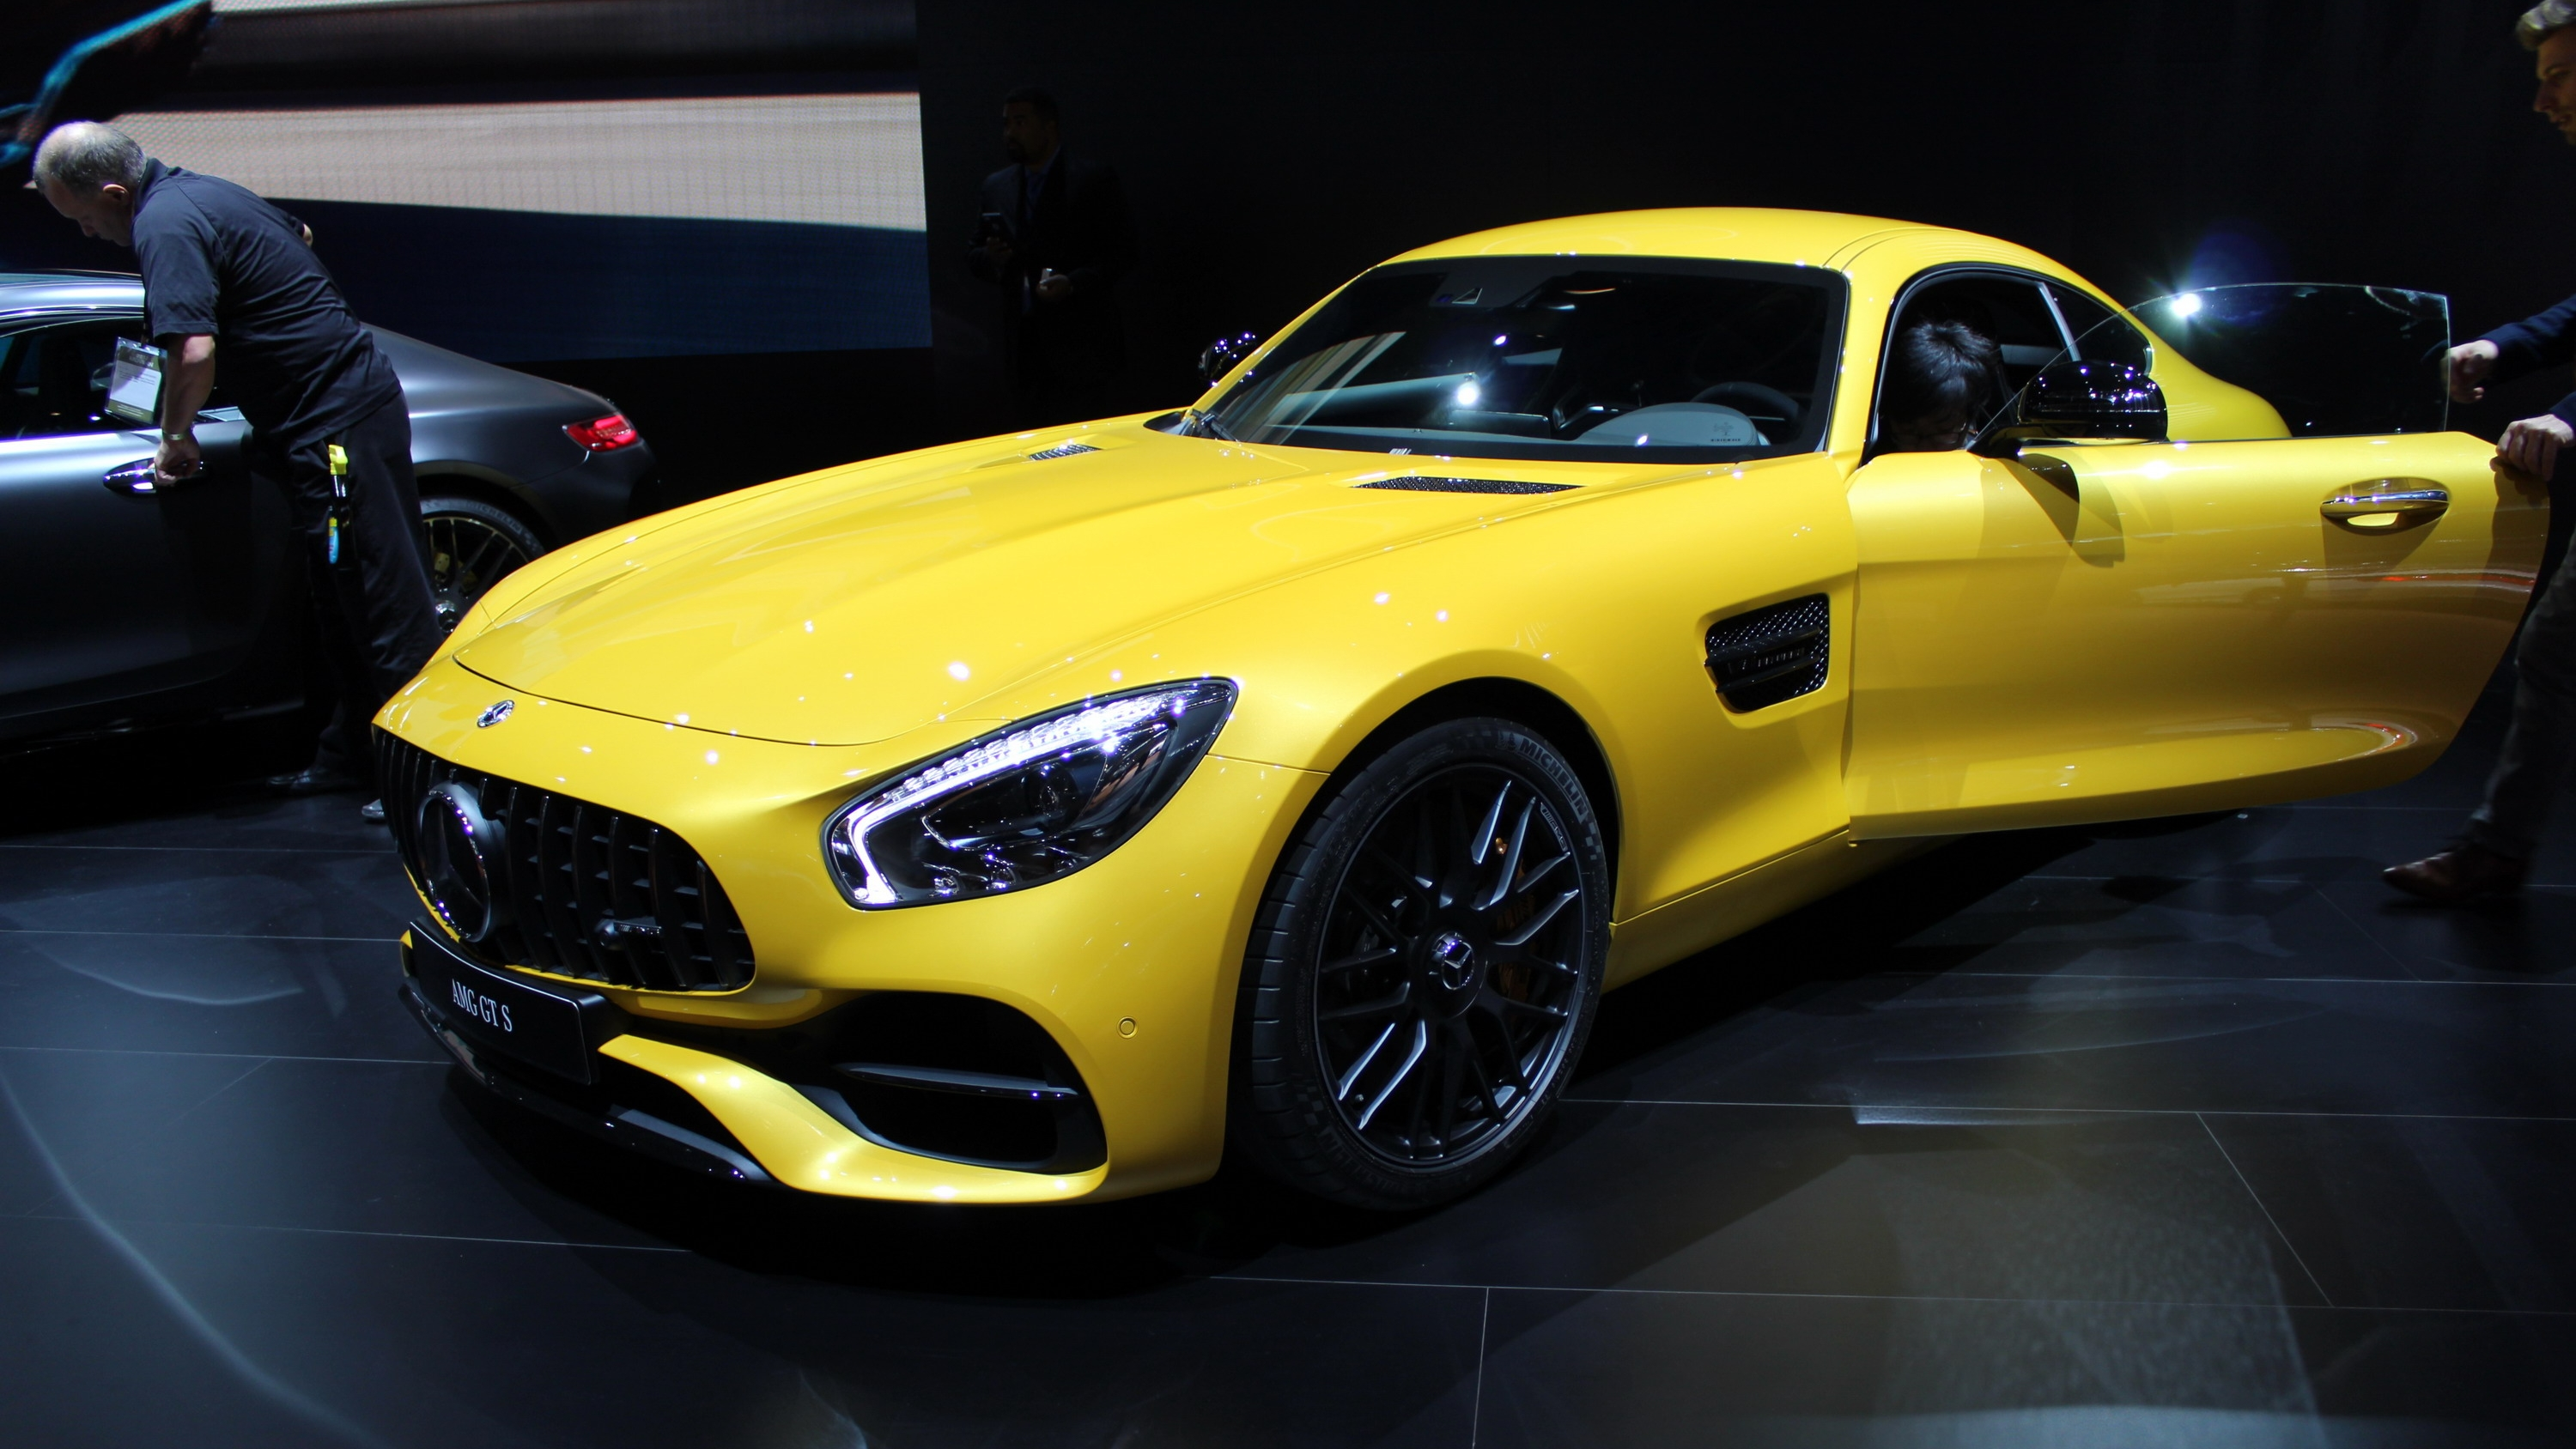 Mercedes Sls Amg Gt >> Mercedes-AMG Turns Up The Heat On Family Of GT Sports Cars | Top Speed